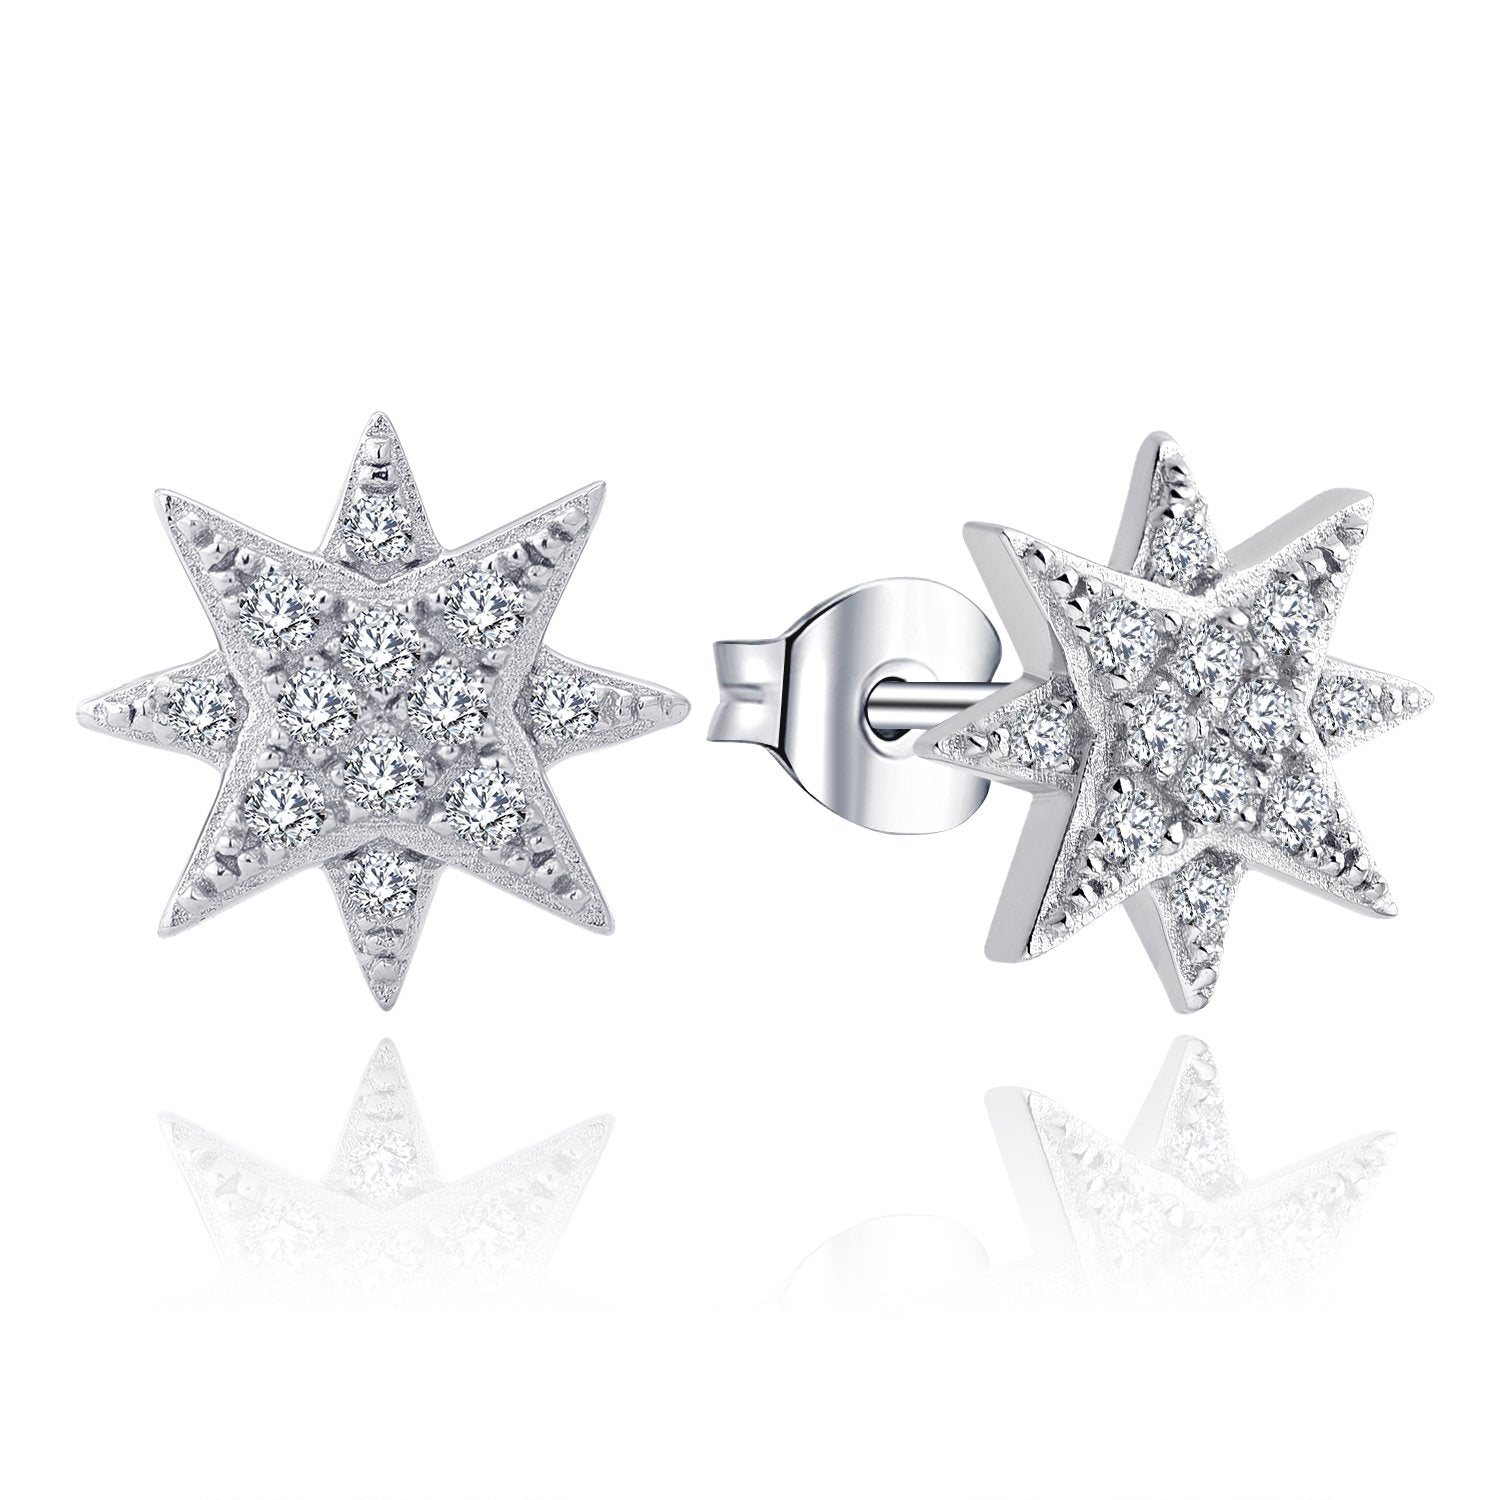 Farjar Classic 9K White Gold North Star Stud Earrings with  0.17cttw Round Diamond